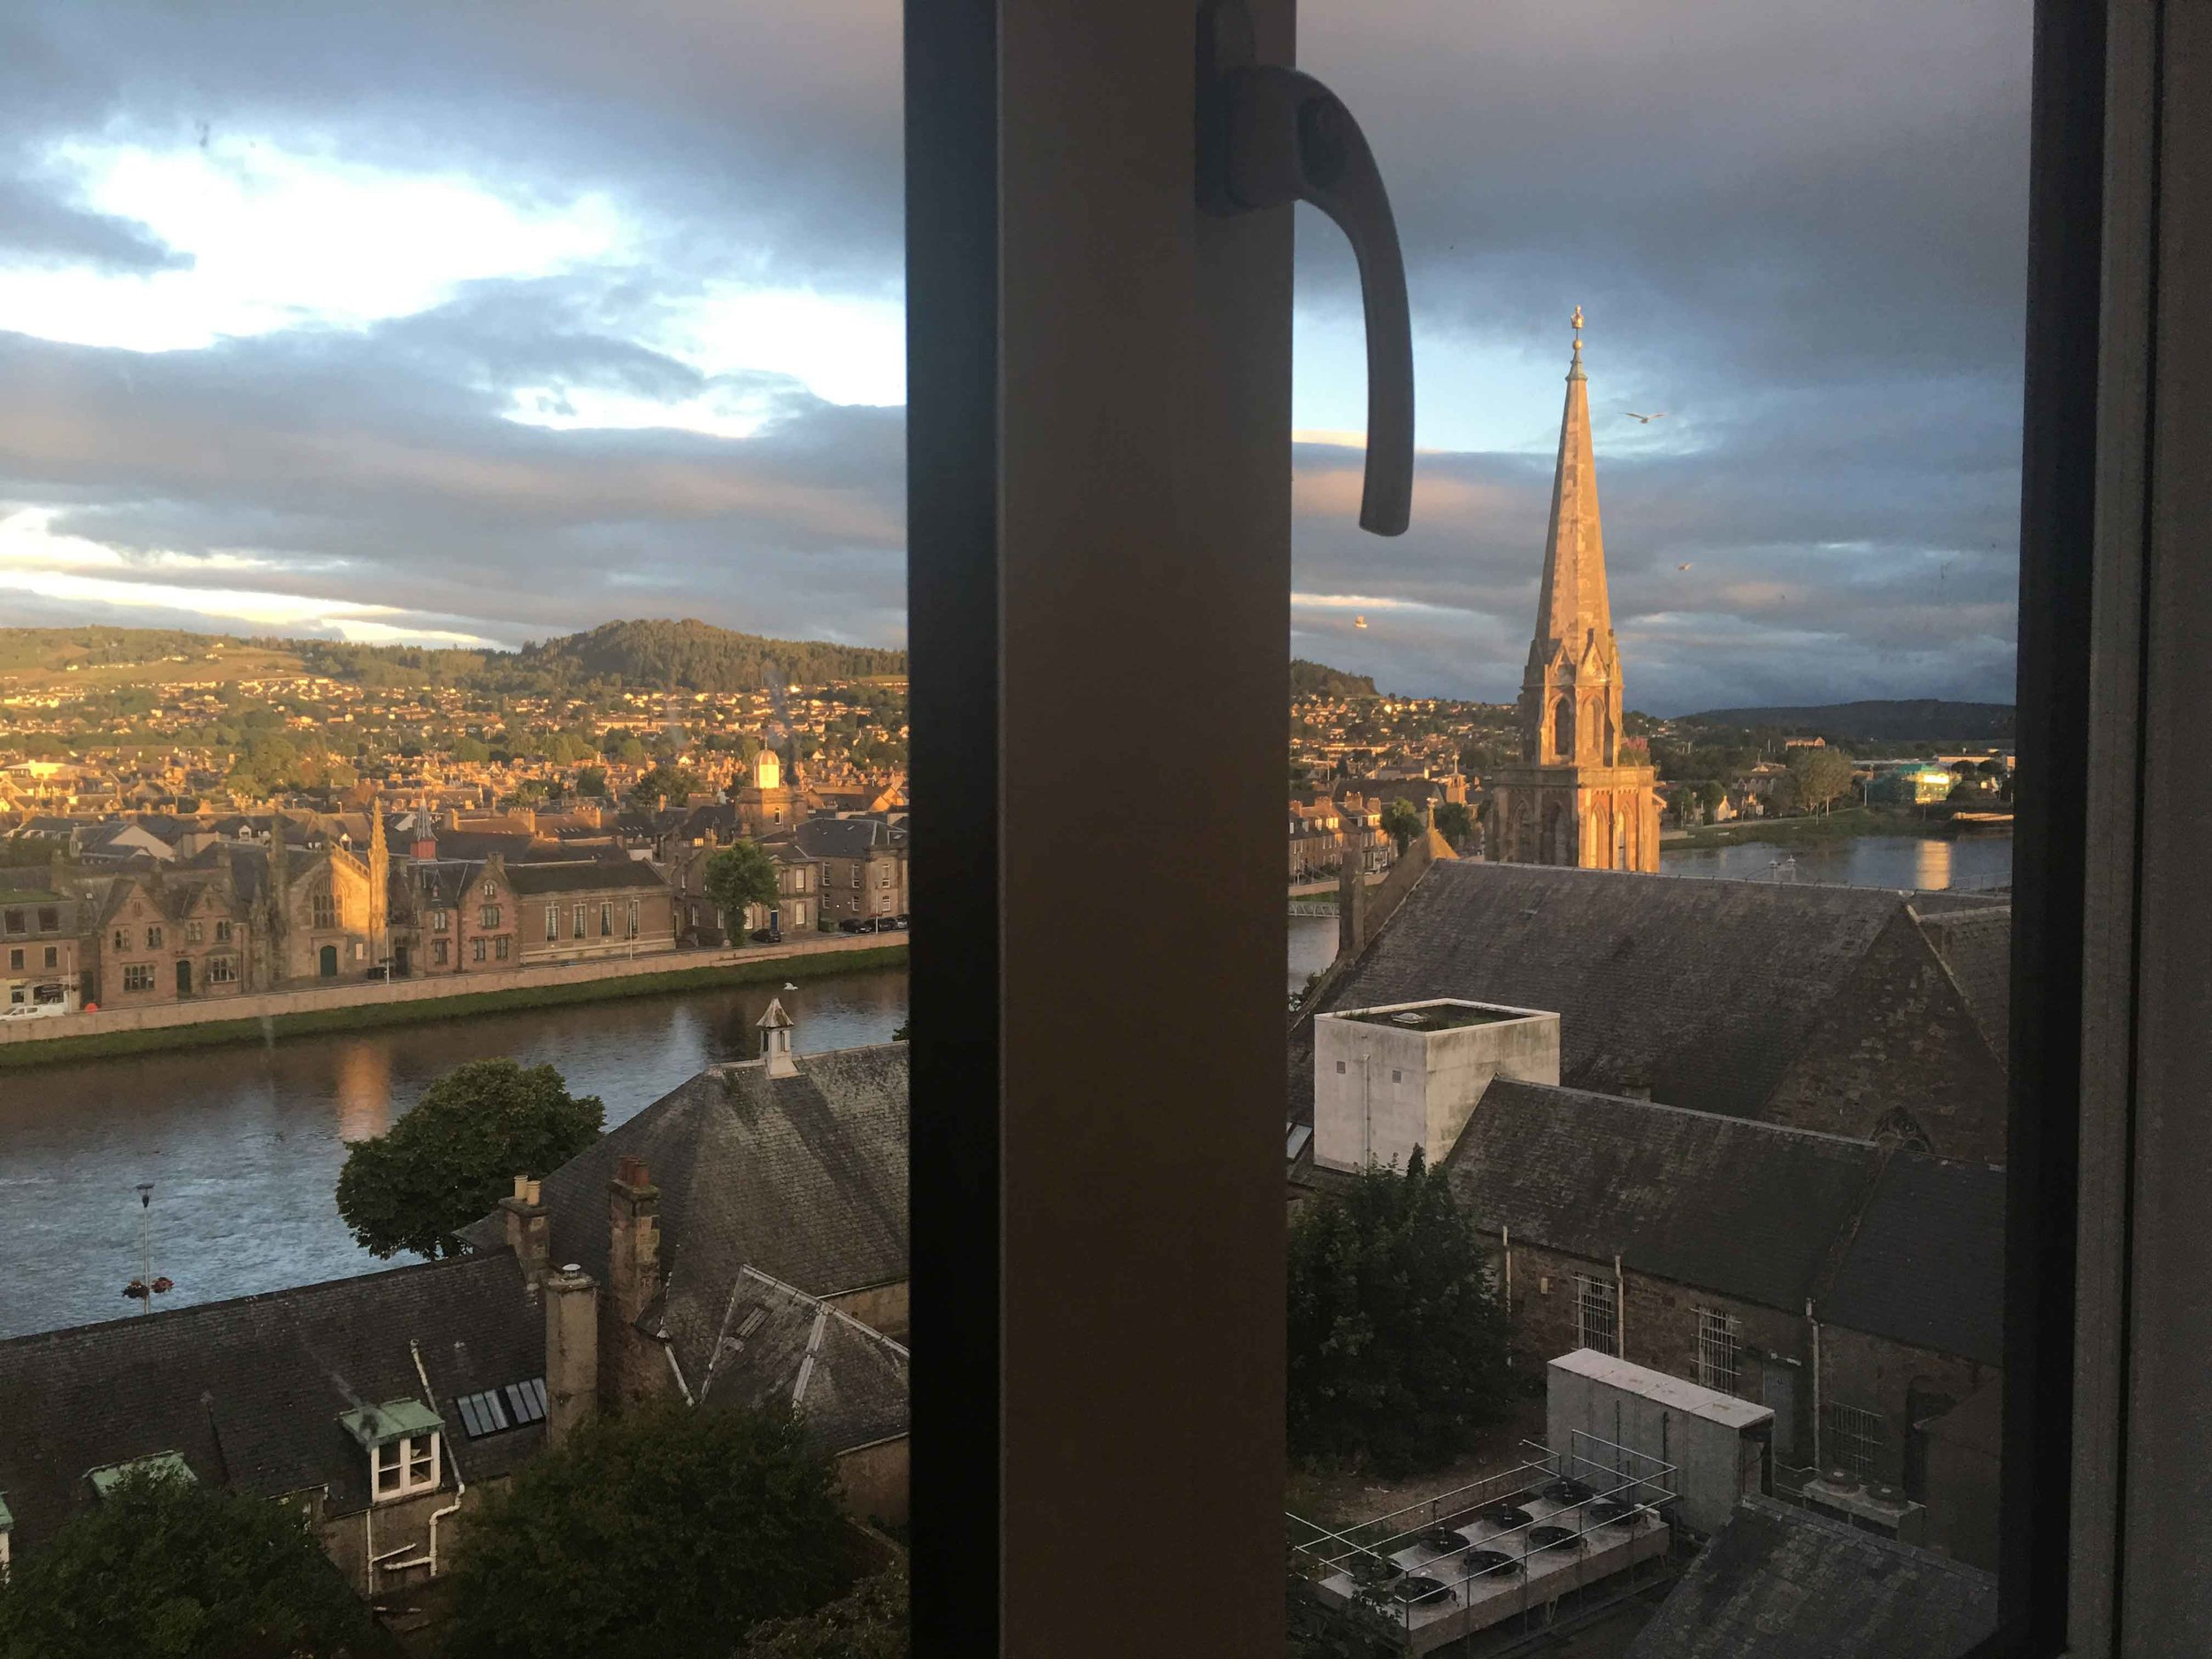 Mercure Inverness hotel, Inverness, Scotland, view from my room window. Image©sourcingstyle.com